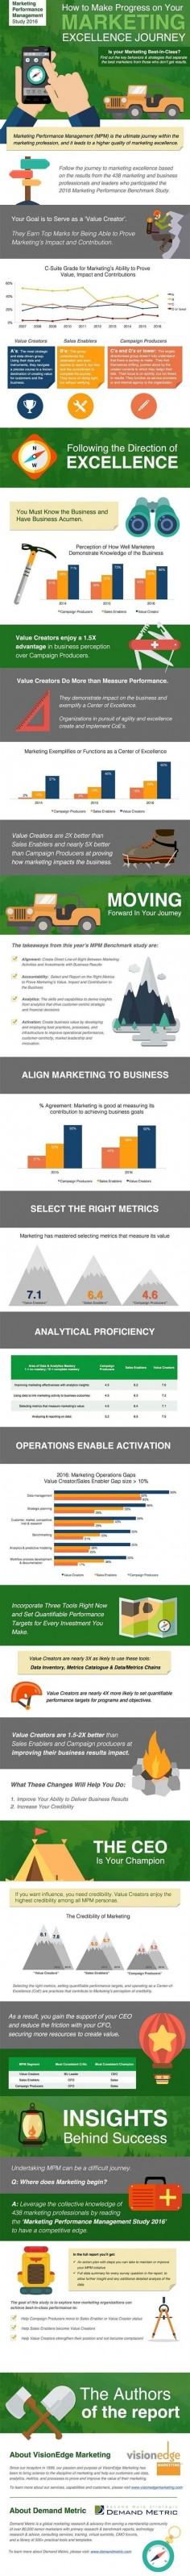 #Marketing #Infographic - How to Make Progress on Your Marketing Excellence Journey